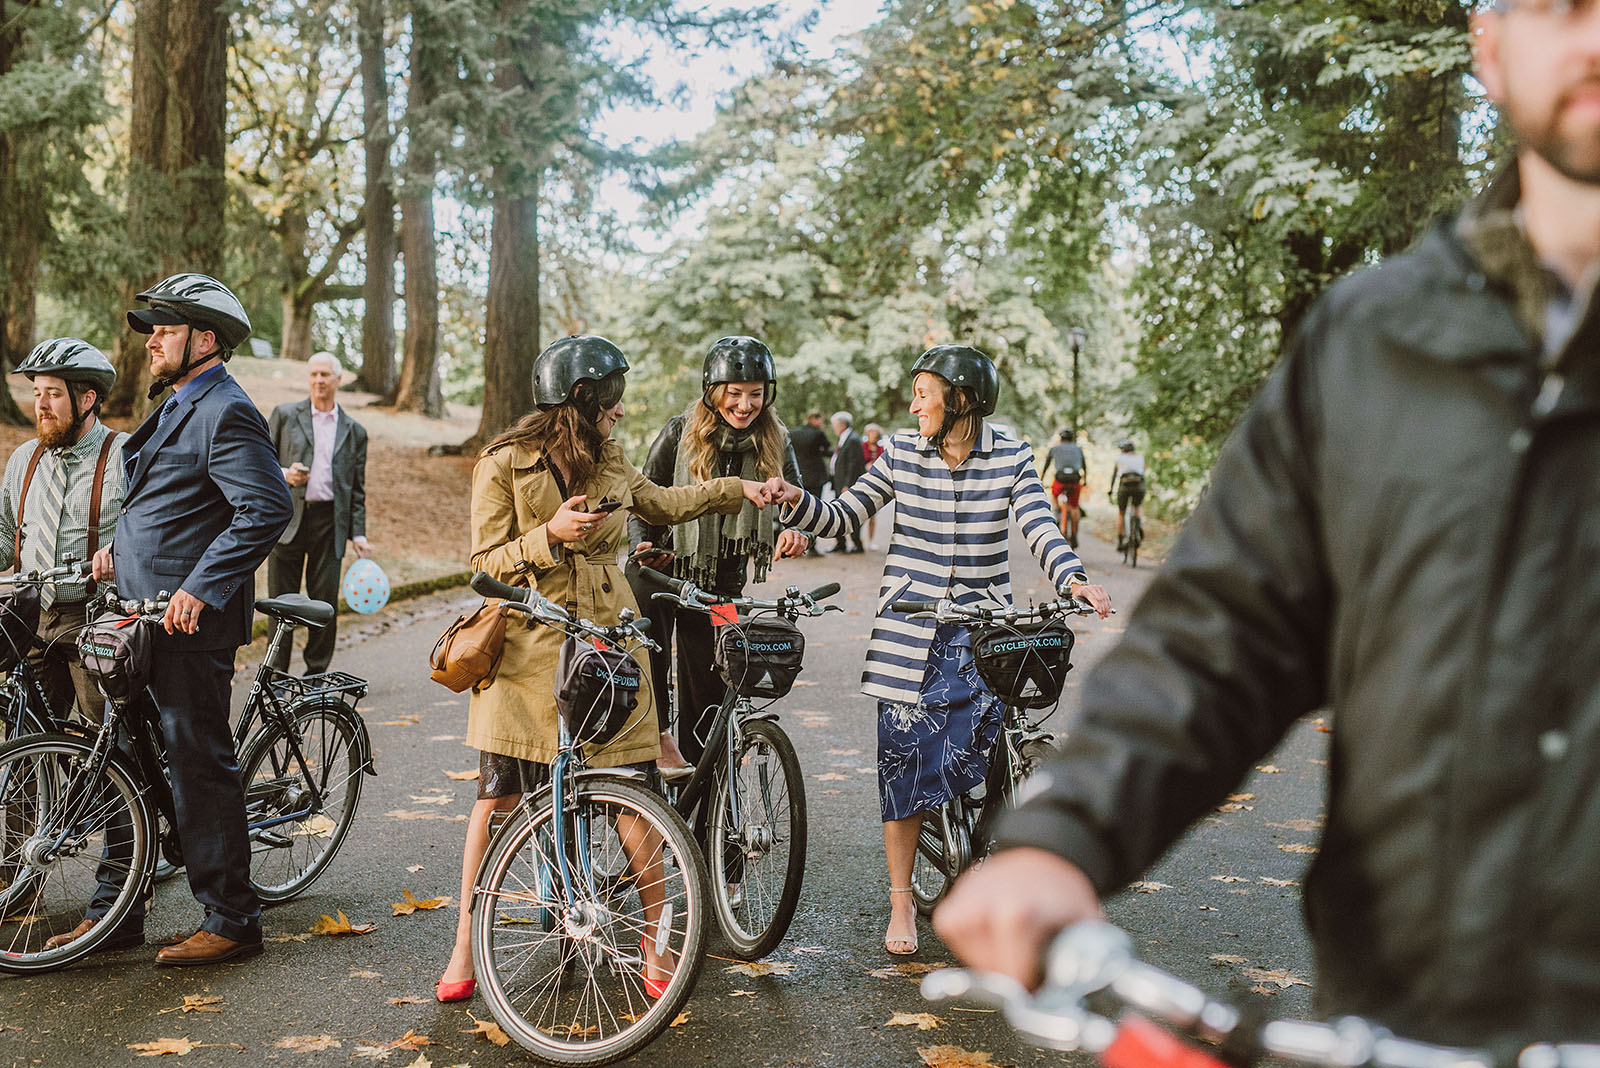 wedding guests fist bumping before a bike parade on Mt Tabor - portland wedding photography